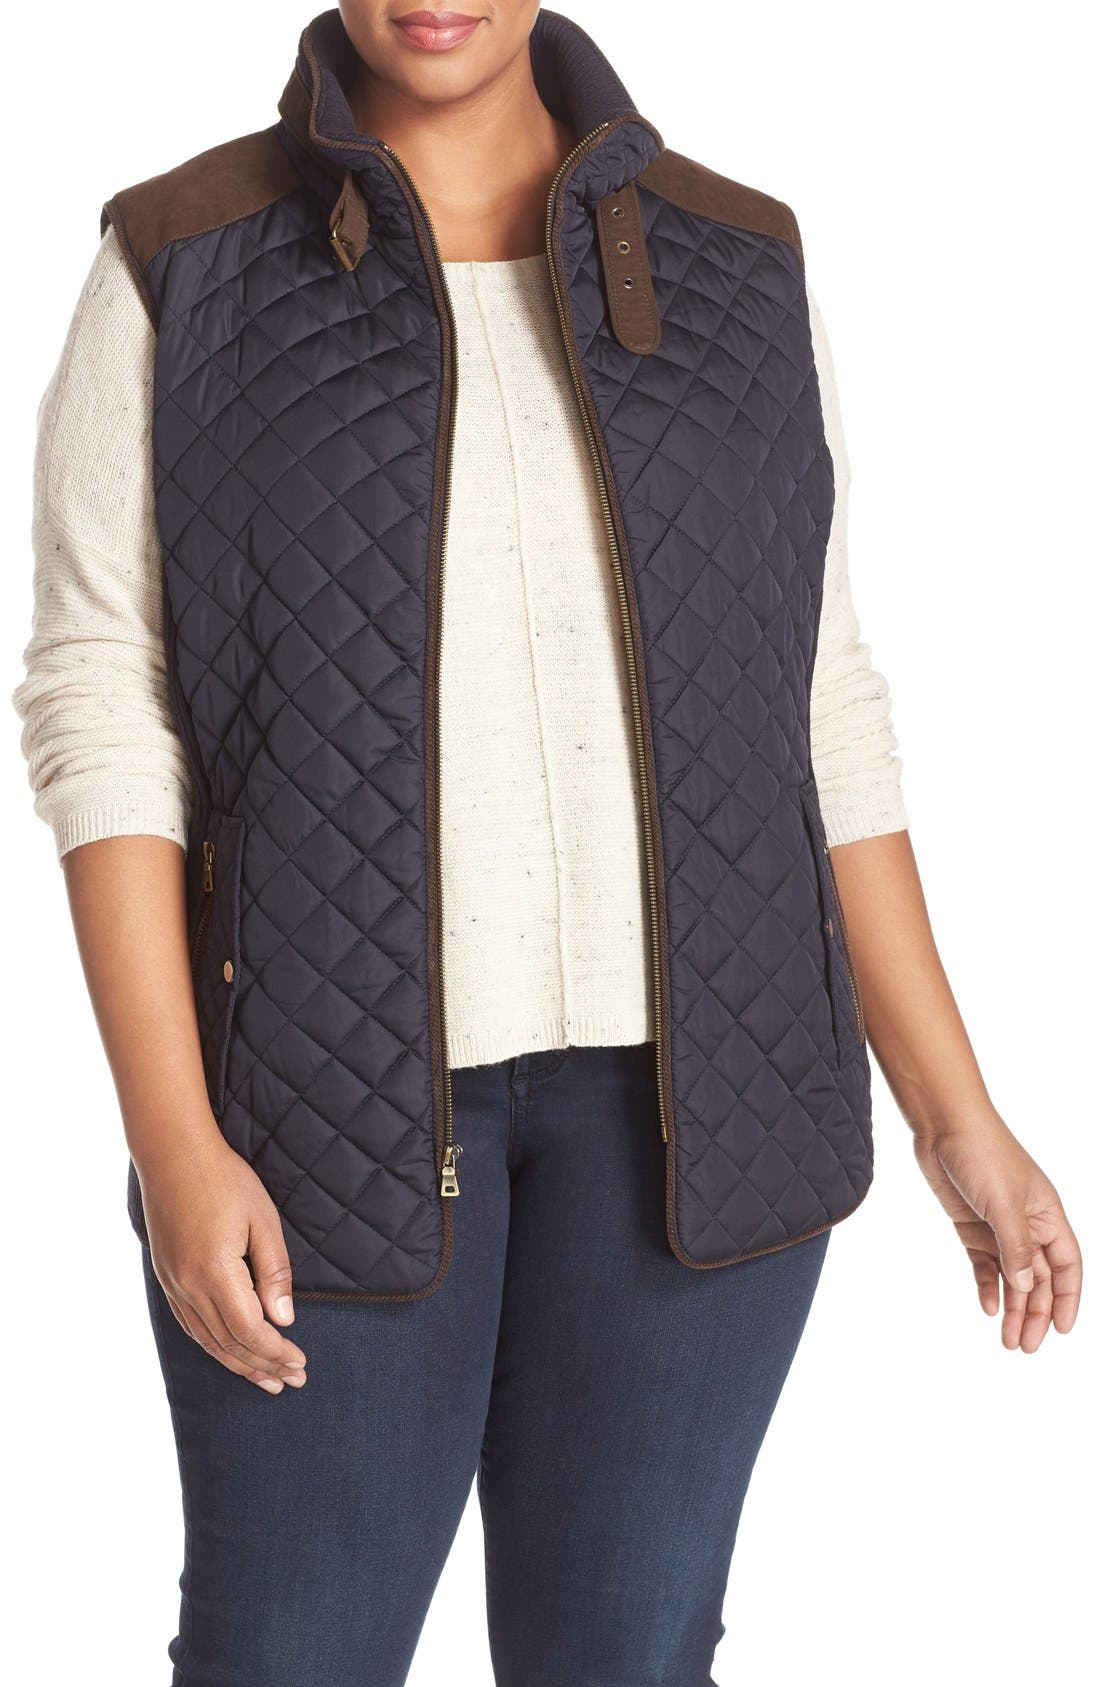 Main Image - Gallery Quilted Vest with Faux Suede Trim (Plus Size)